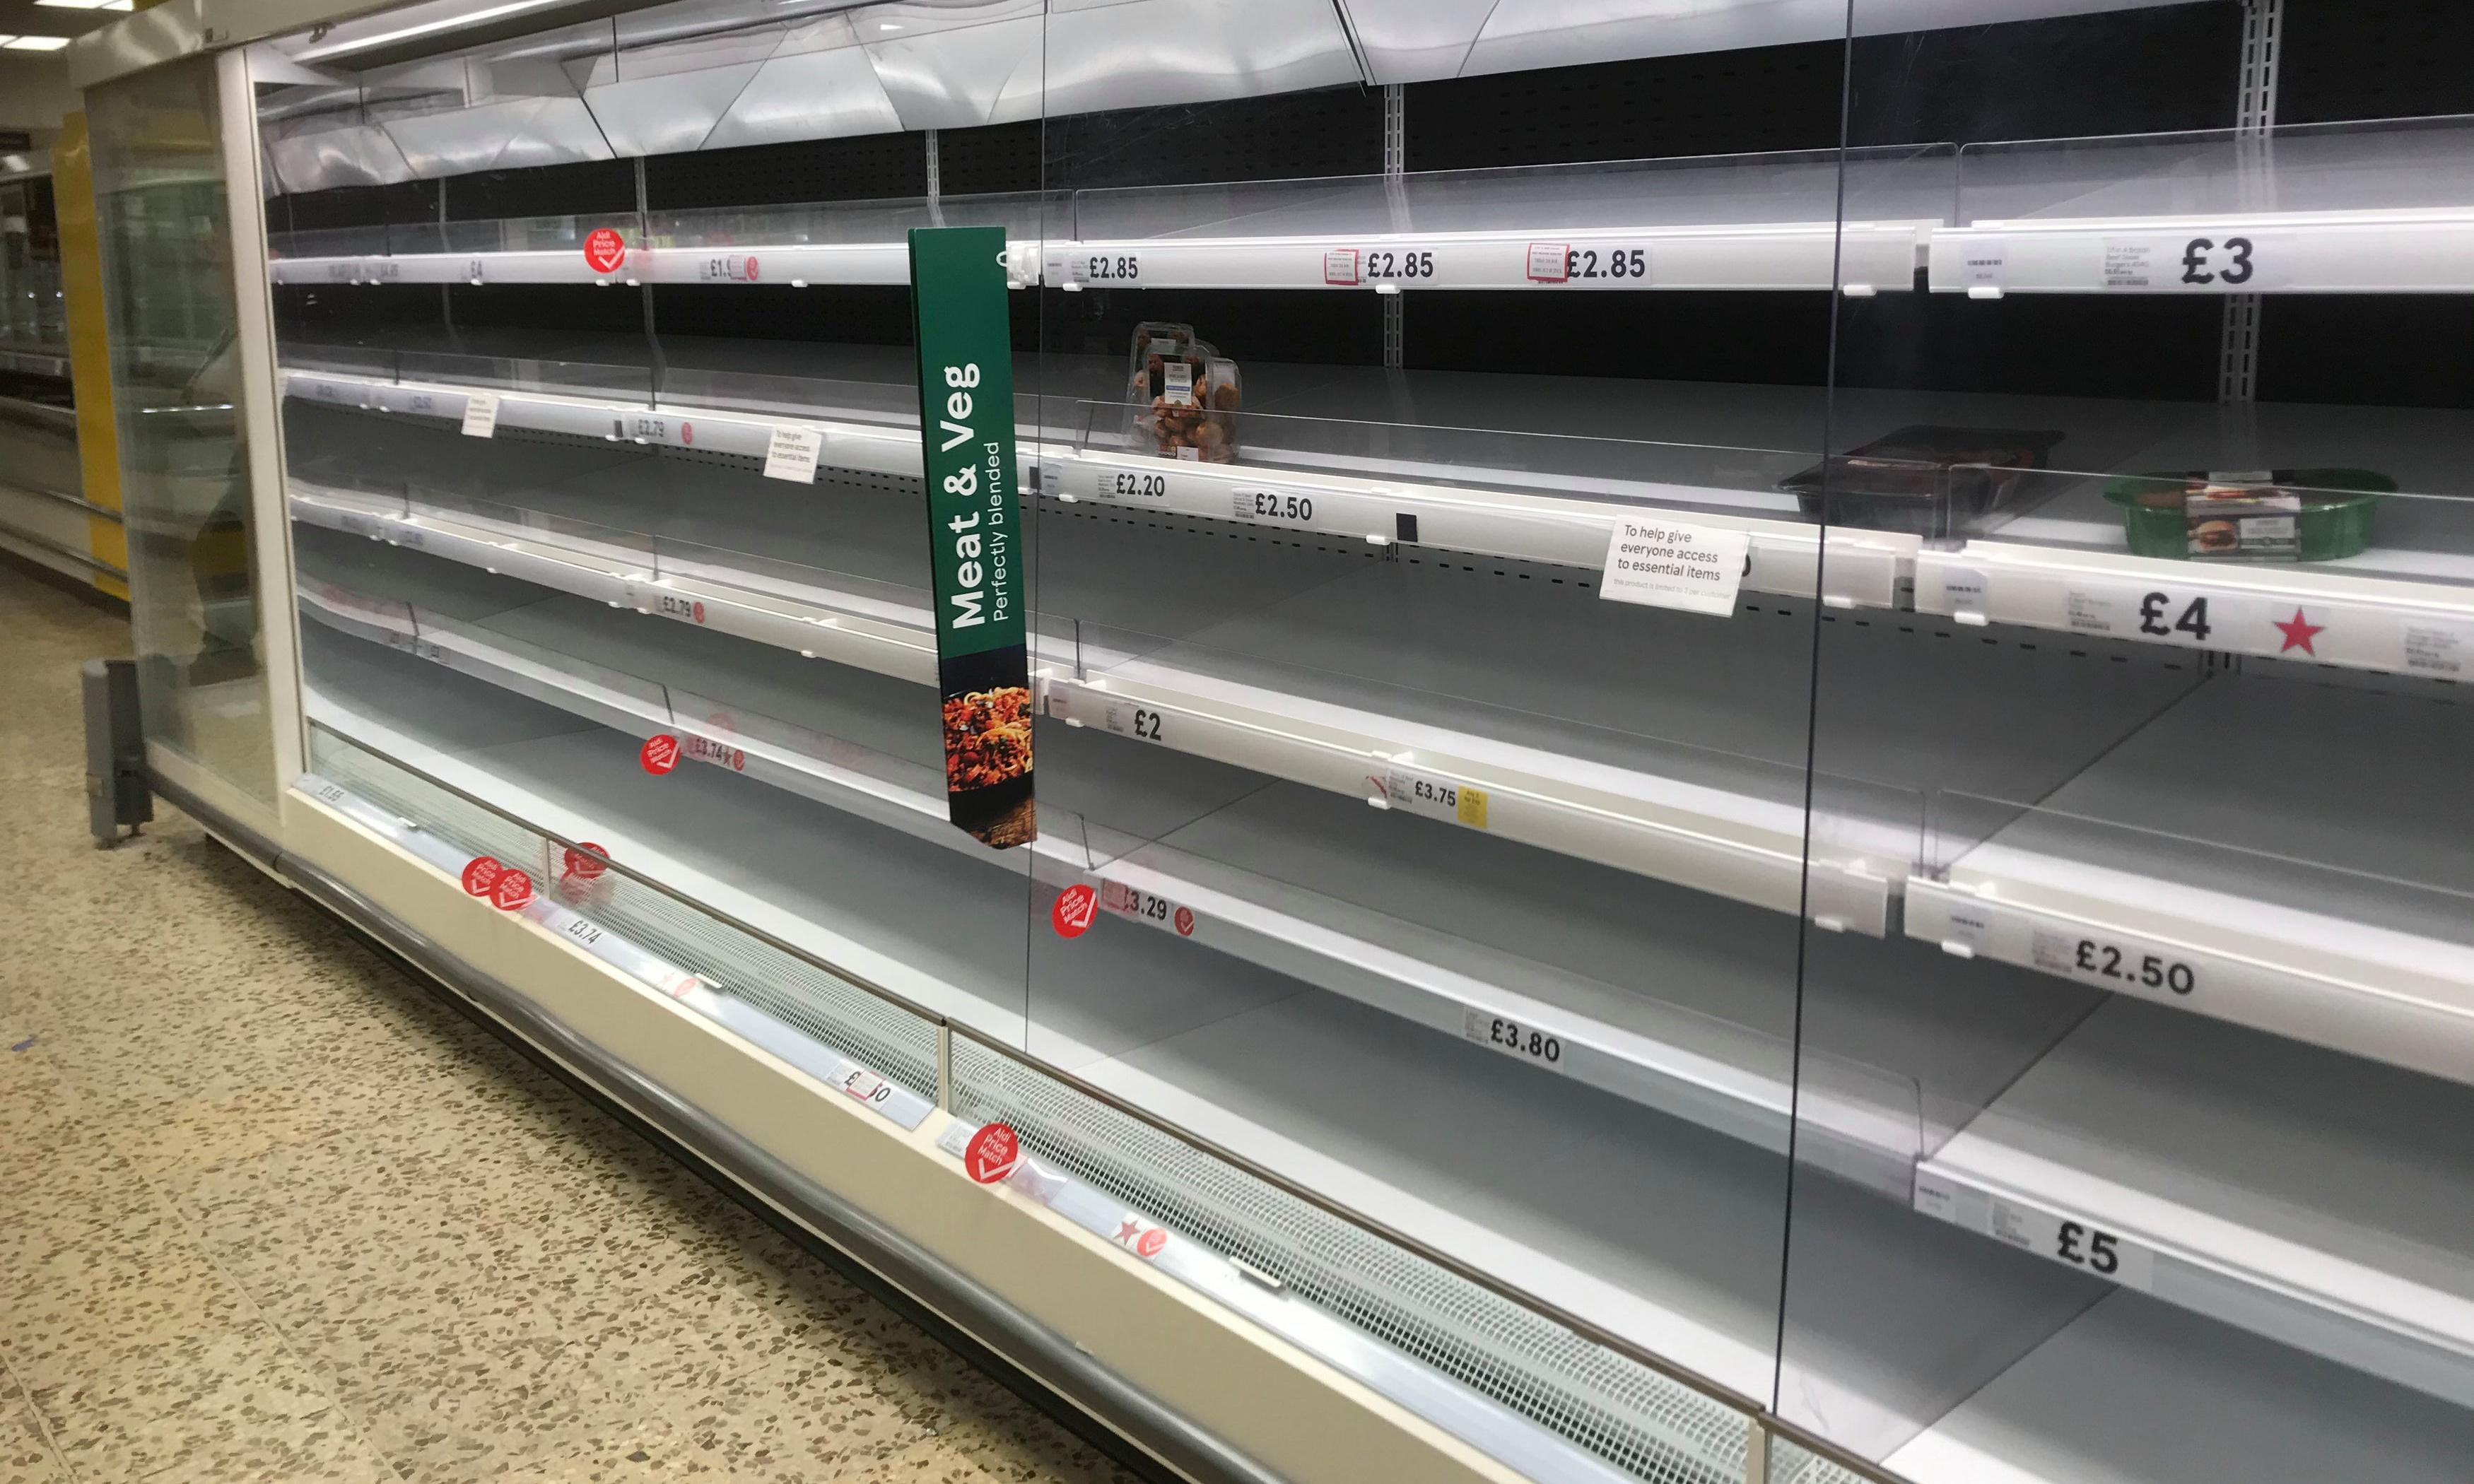 The Guardian view on empty supermarket shelves: panic is not the problem